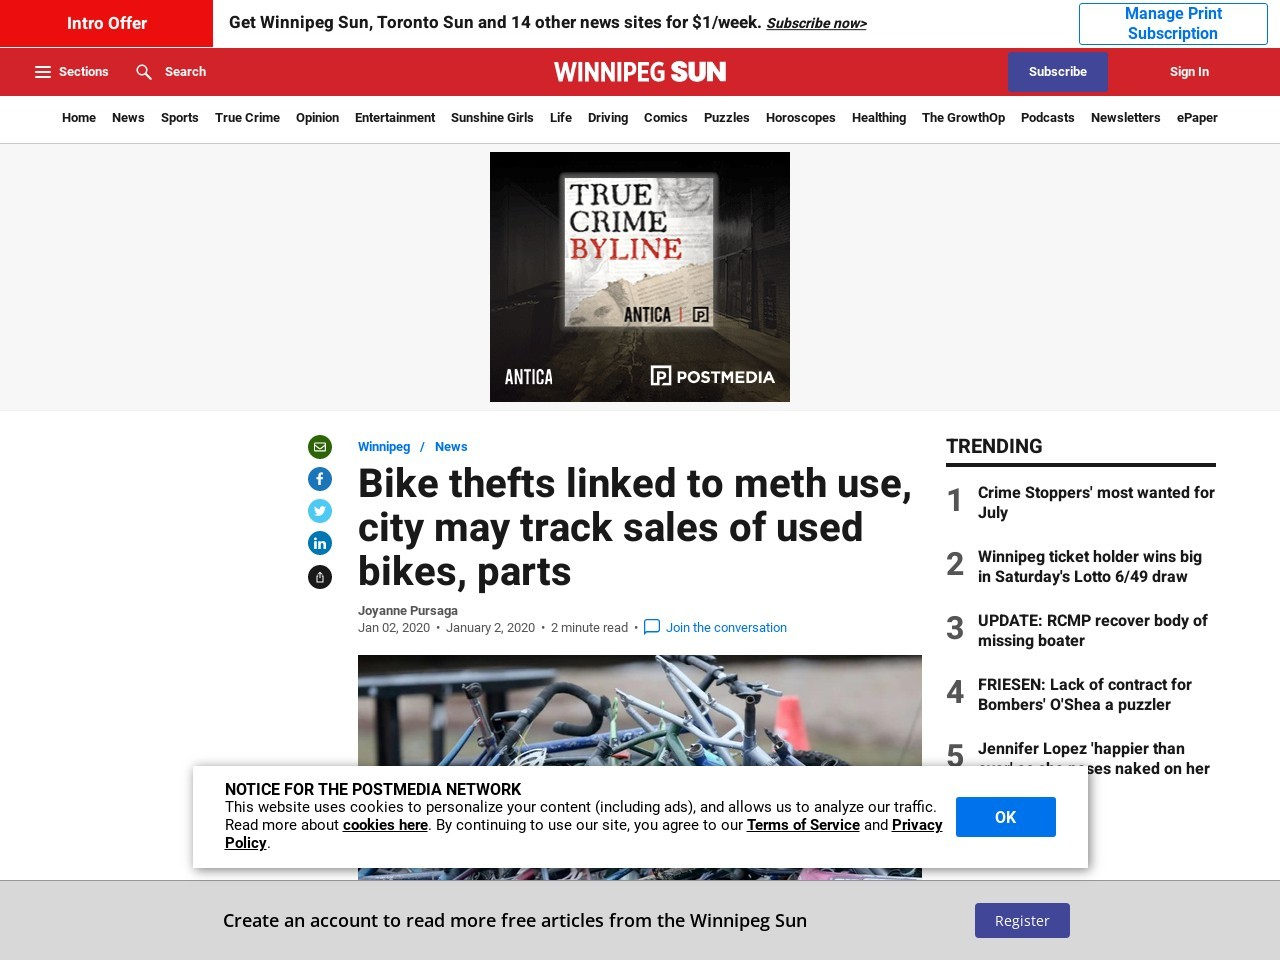 Bike thefts linked to meth use, city may track sales of used bikes, parts